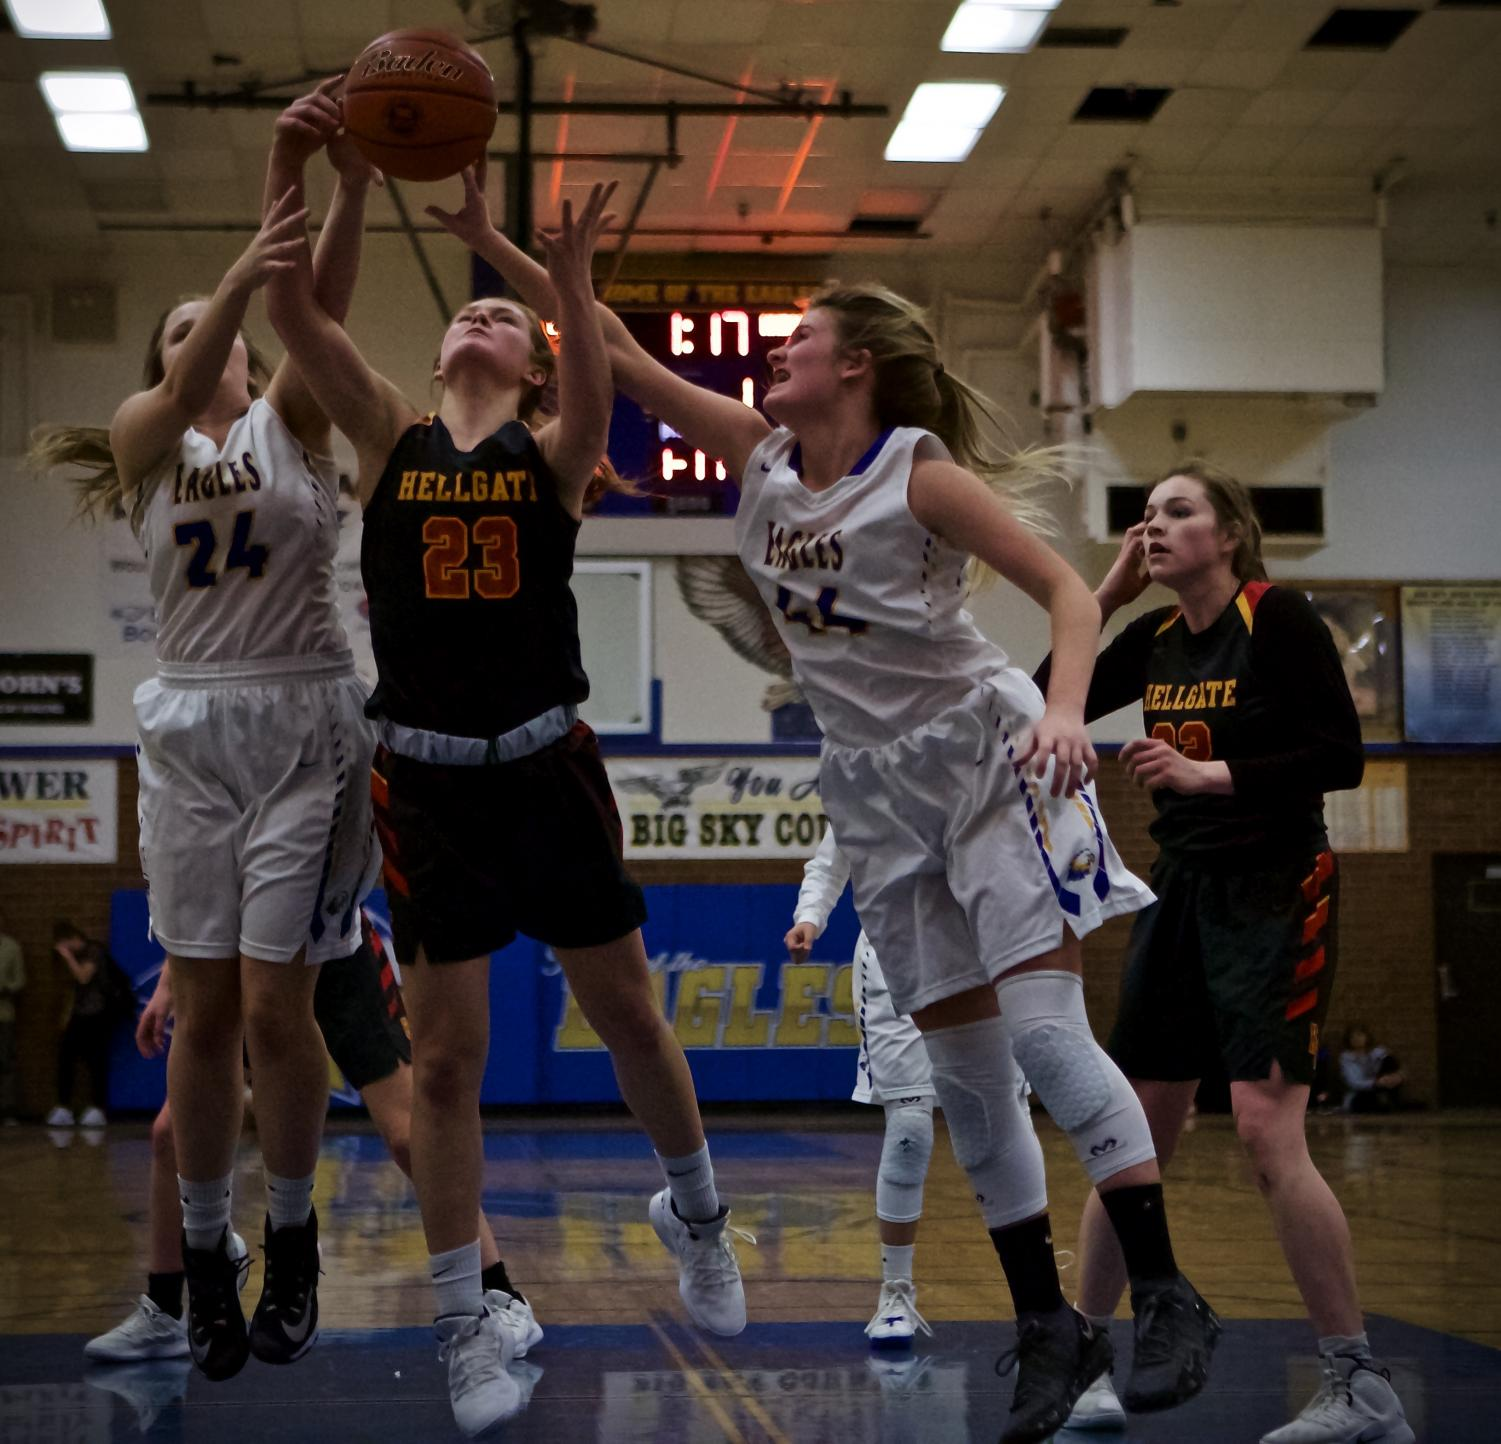 Senior Reagan Shoupe and Freshman Avari Batt attempt to block a Hellgate shooter at a home game where the Eagles fell 33-55.